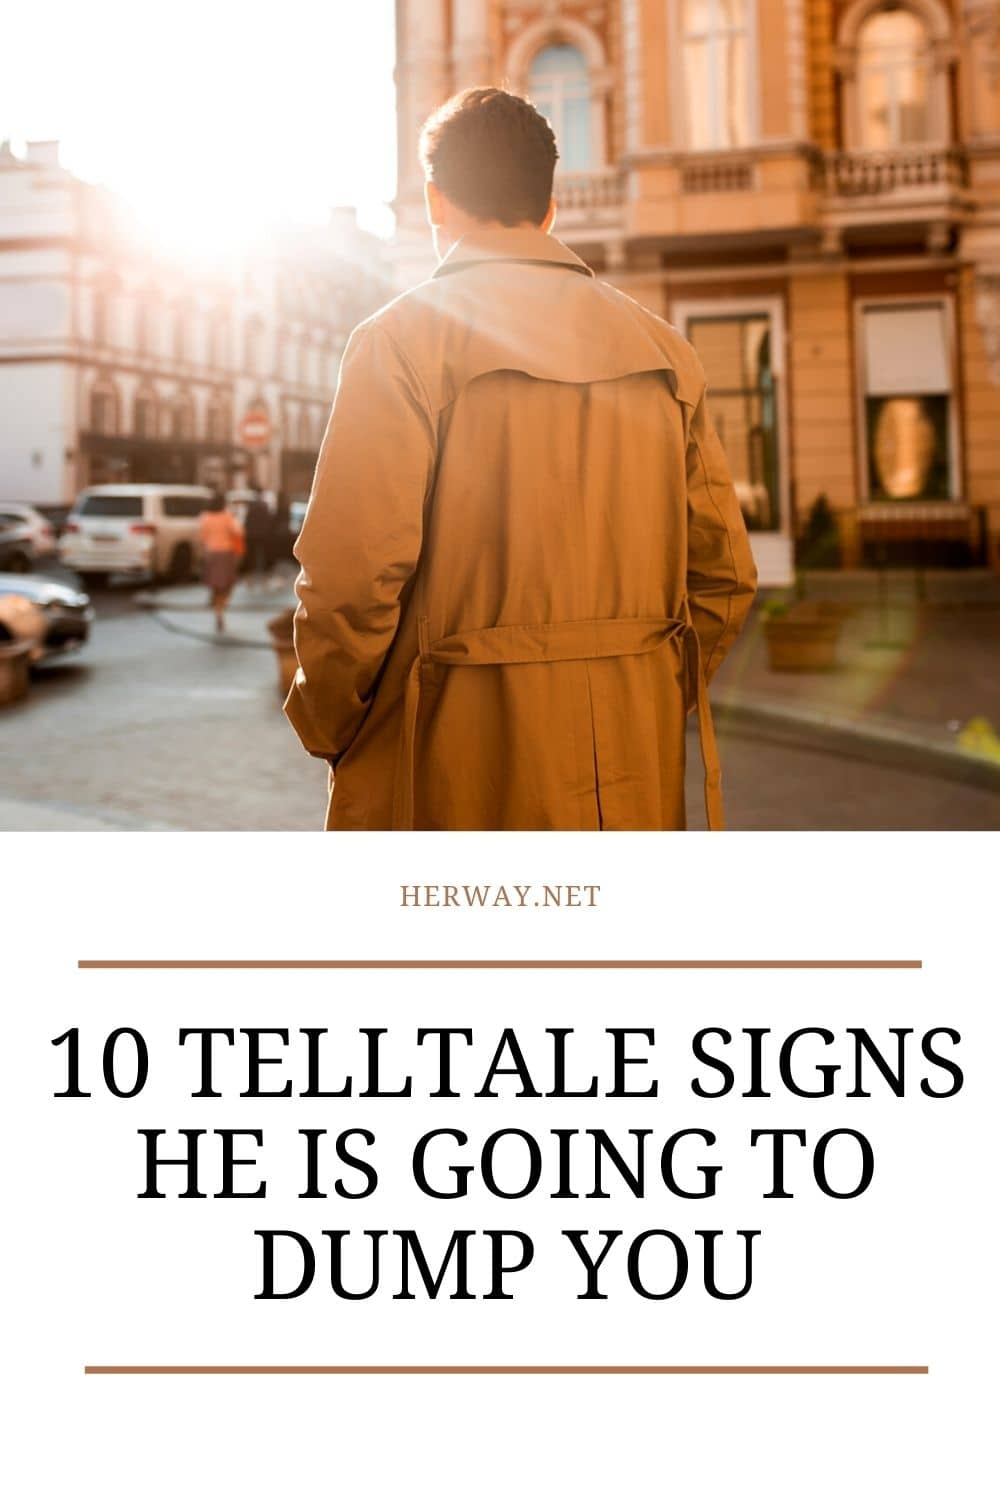 10 Telltale Signs He Is Going To Dump You